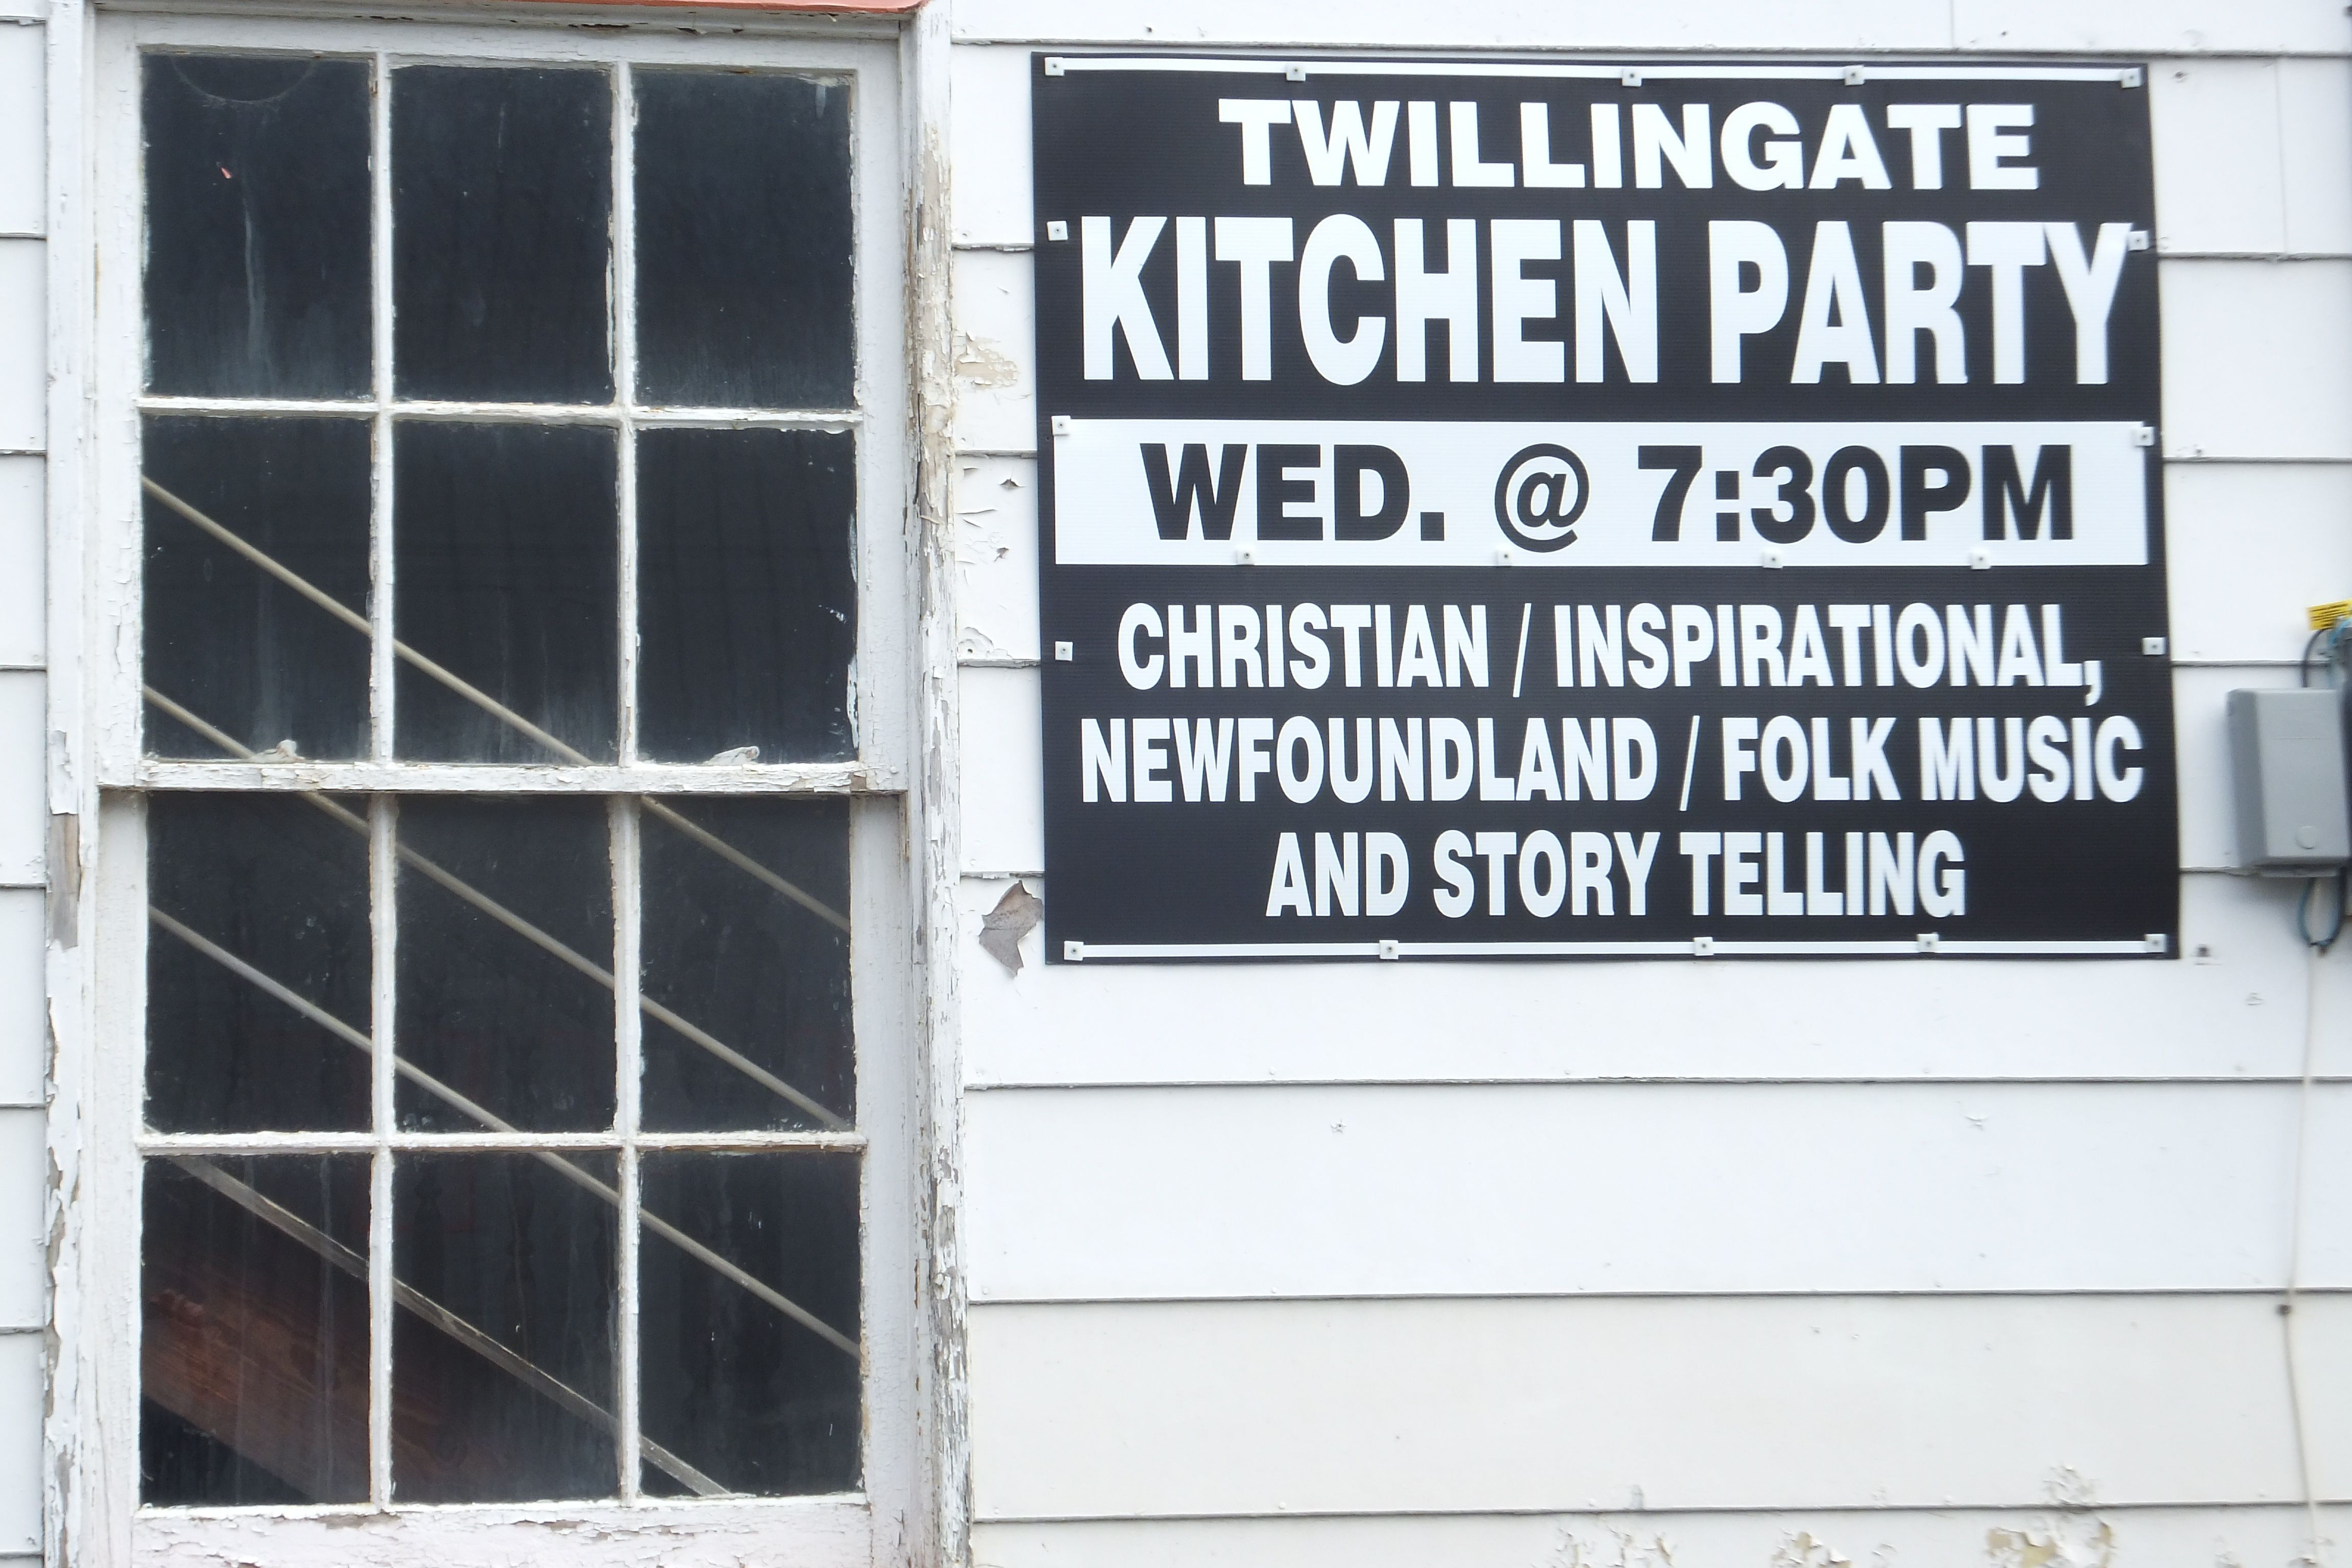 Twillingate kitchen party. | Twillingate Newfoundland | Pinterest ...